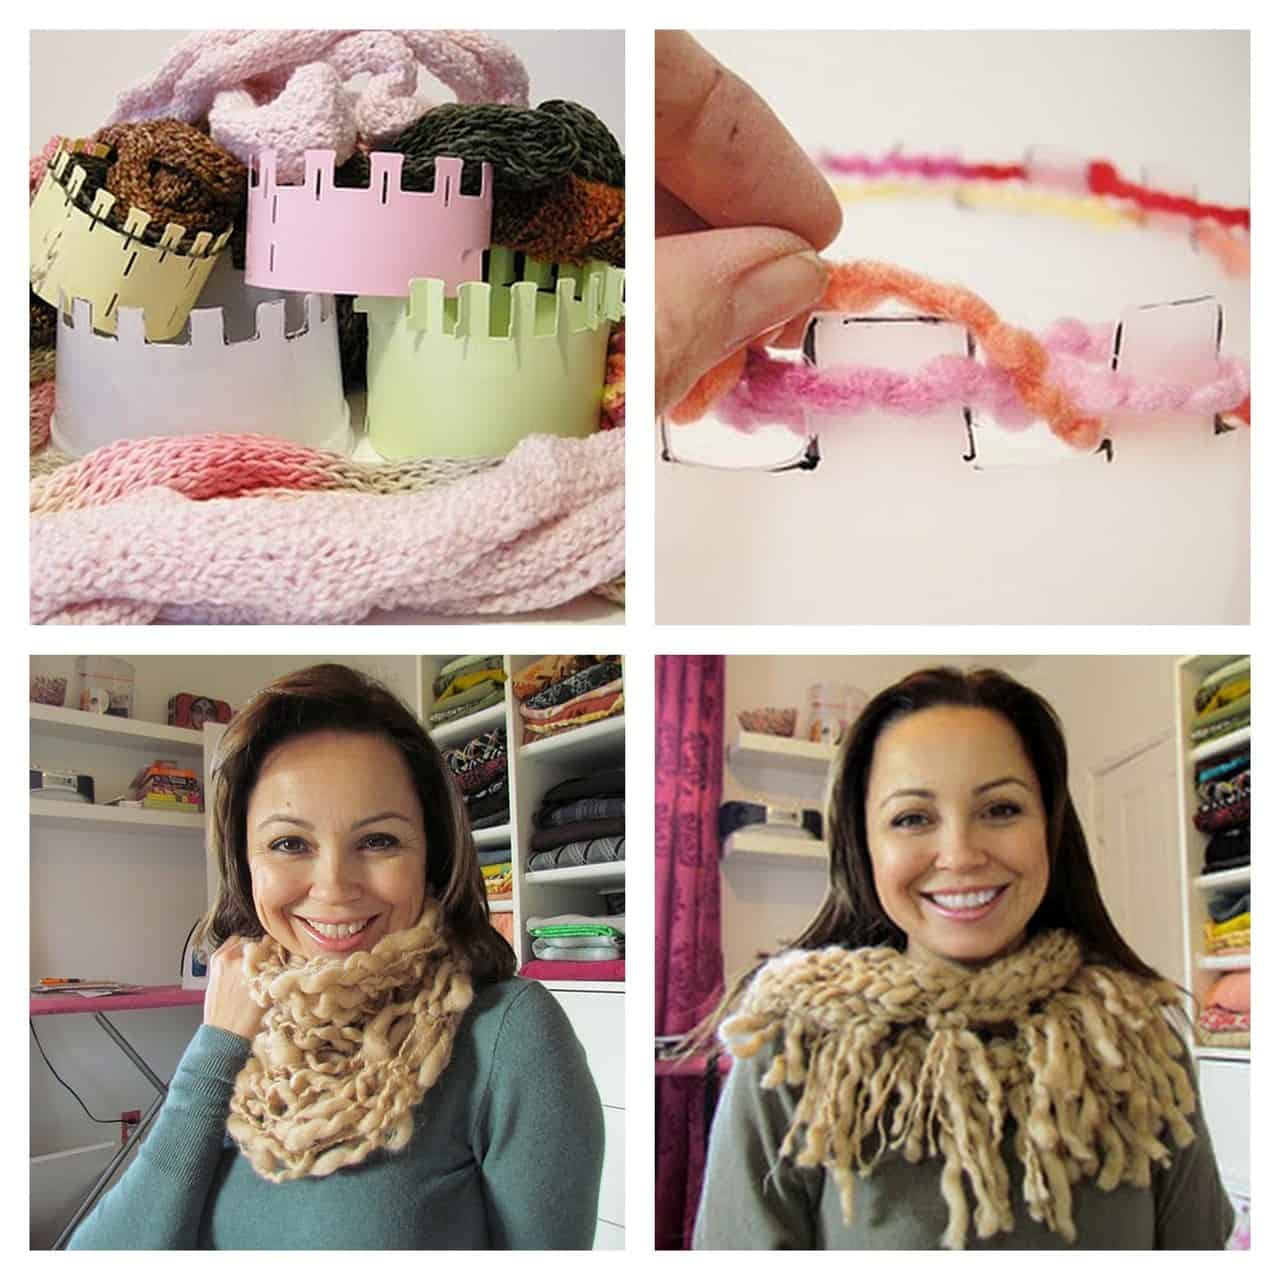 Ice cream tub corked scarves